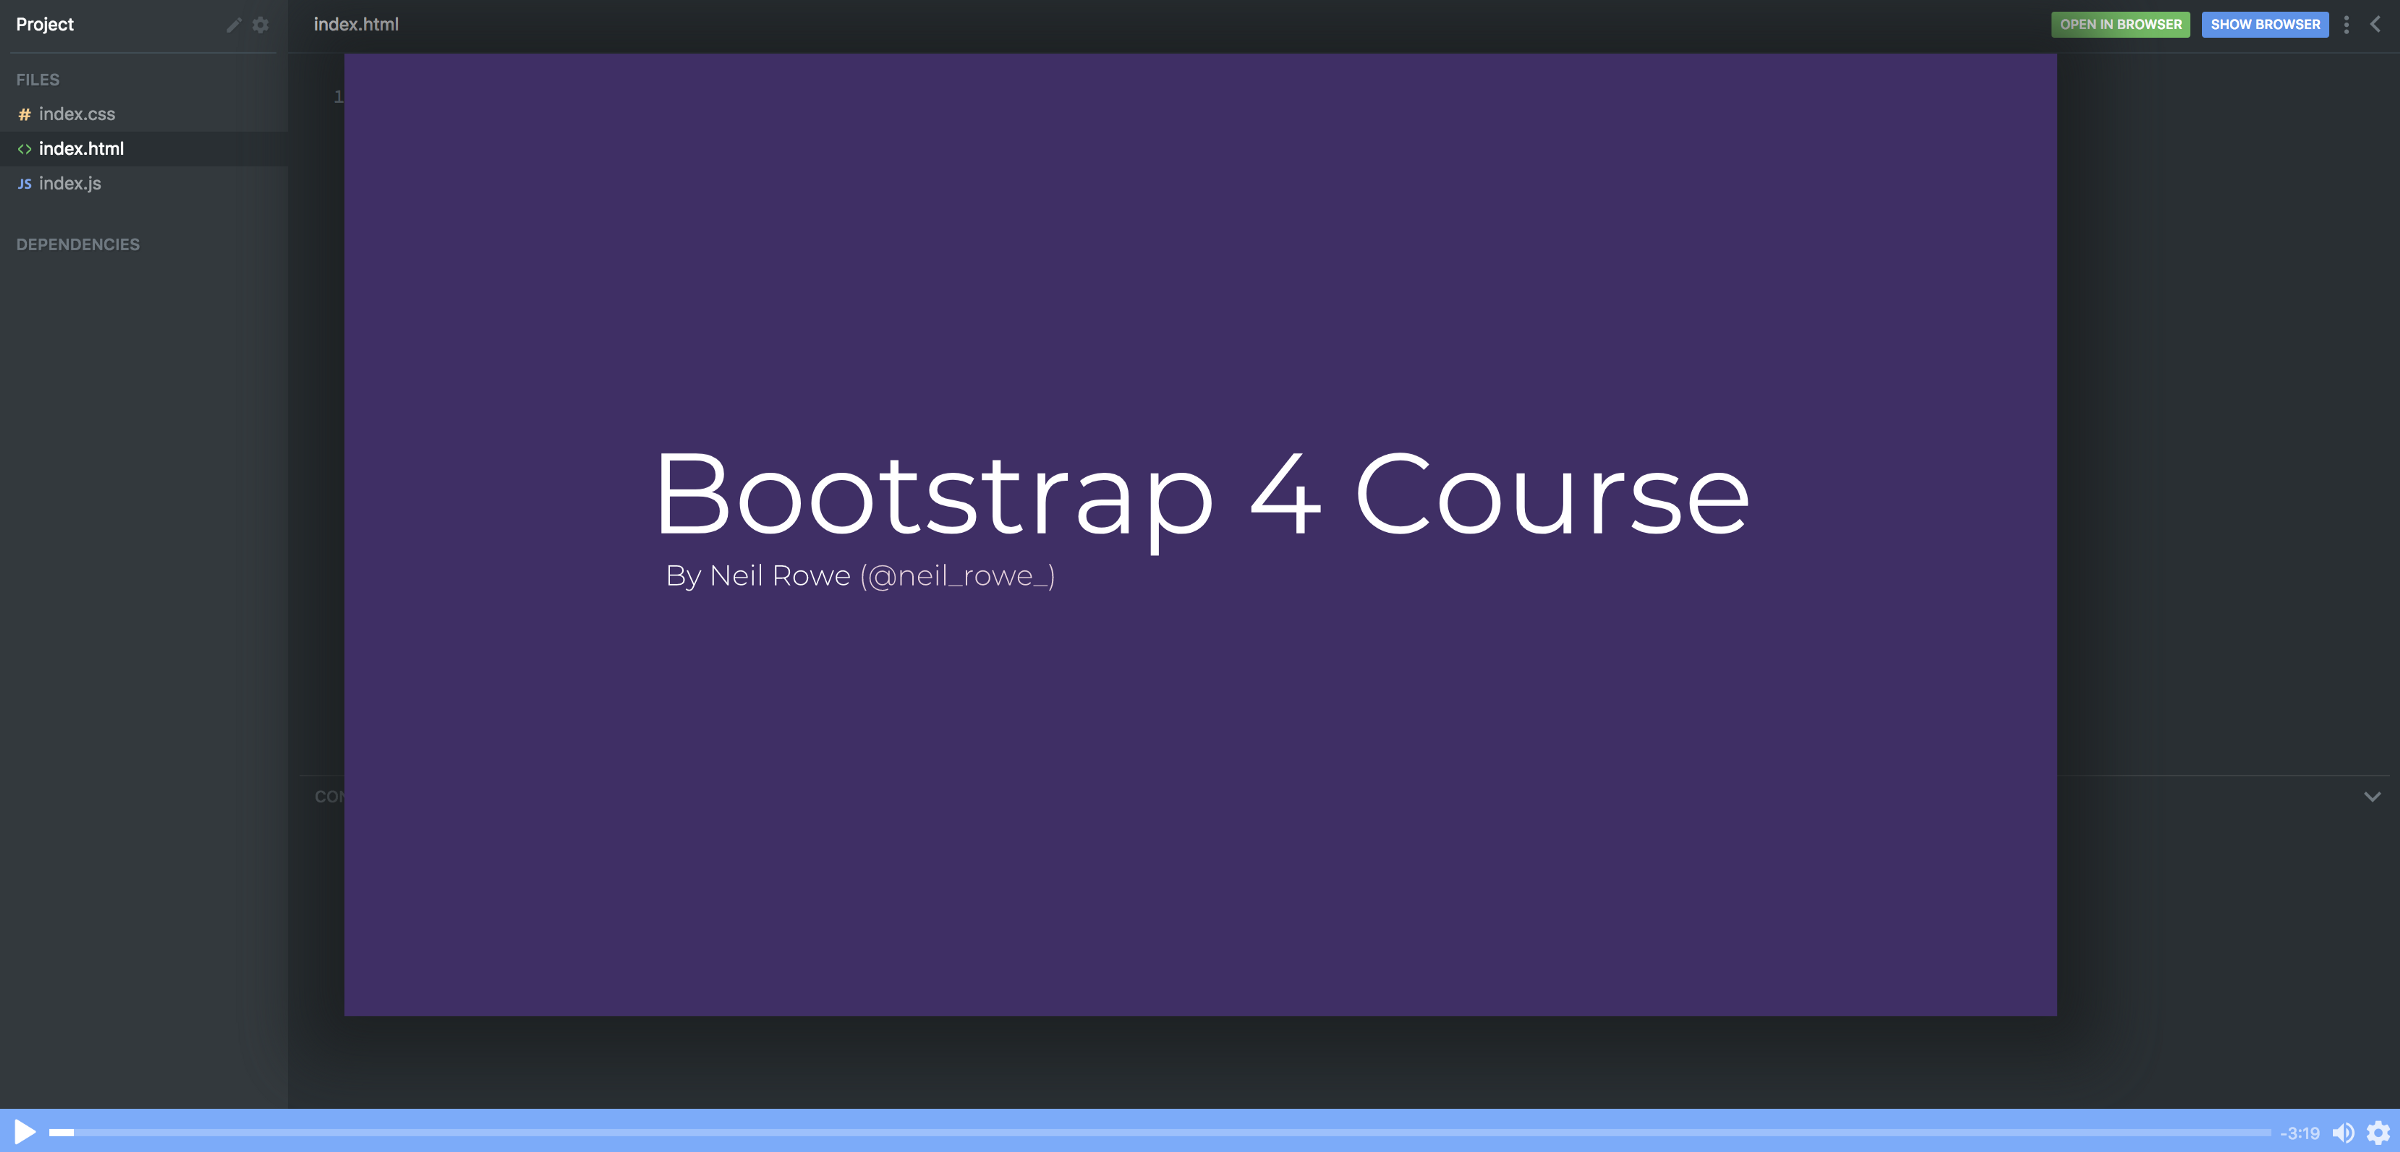 Want to learn Bootstrap 4? Here's our free 10-part course. Happy Easter!